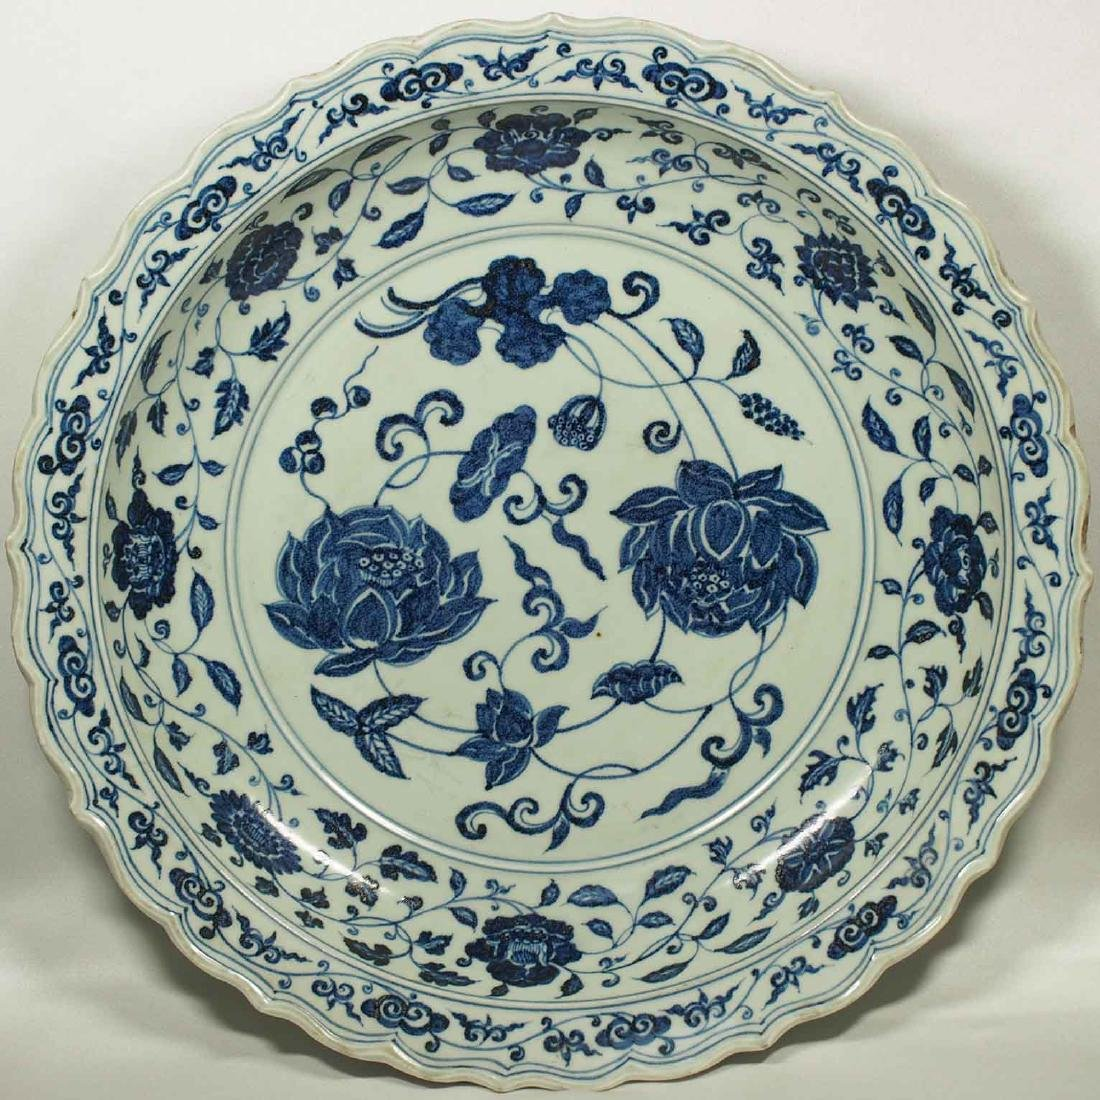 Charger with Lotus and Floral Scroll Design, Xuande